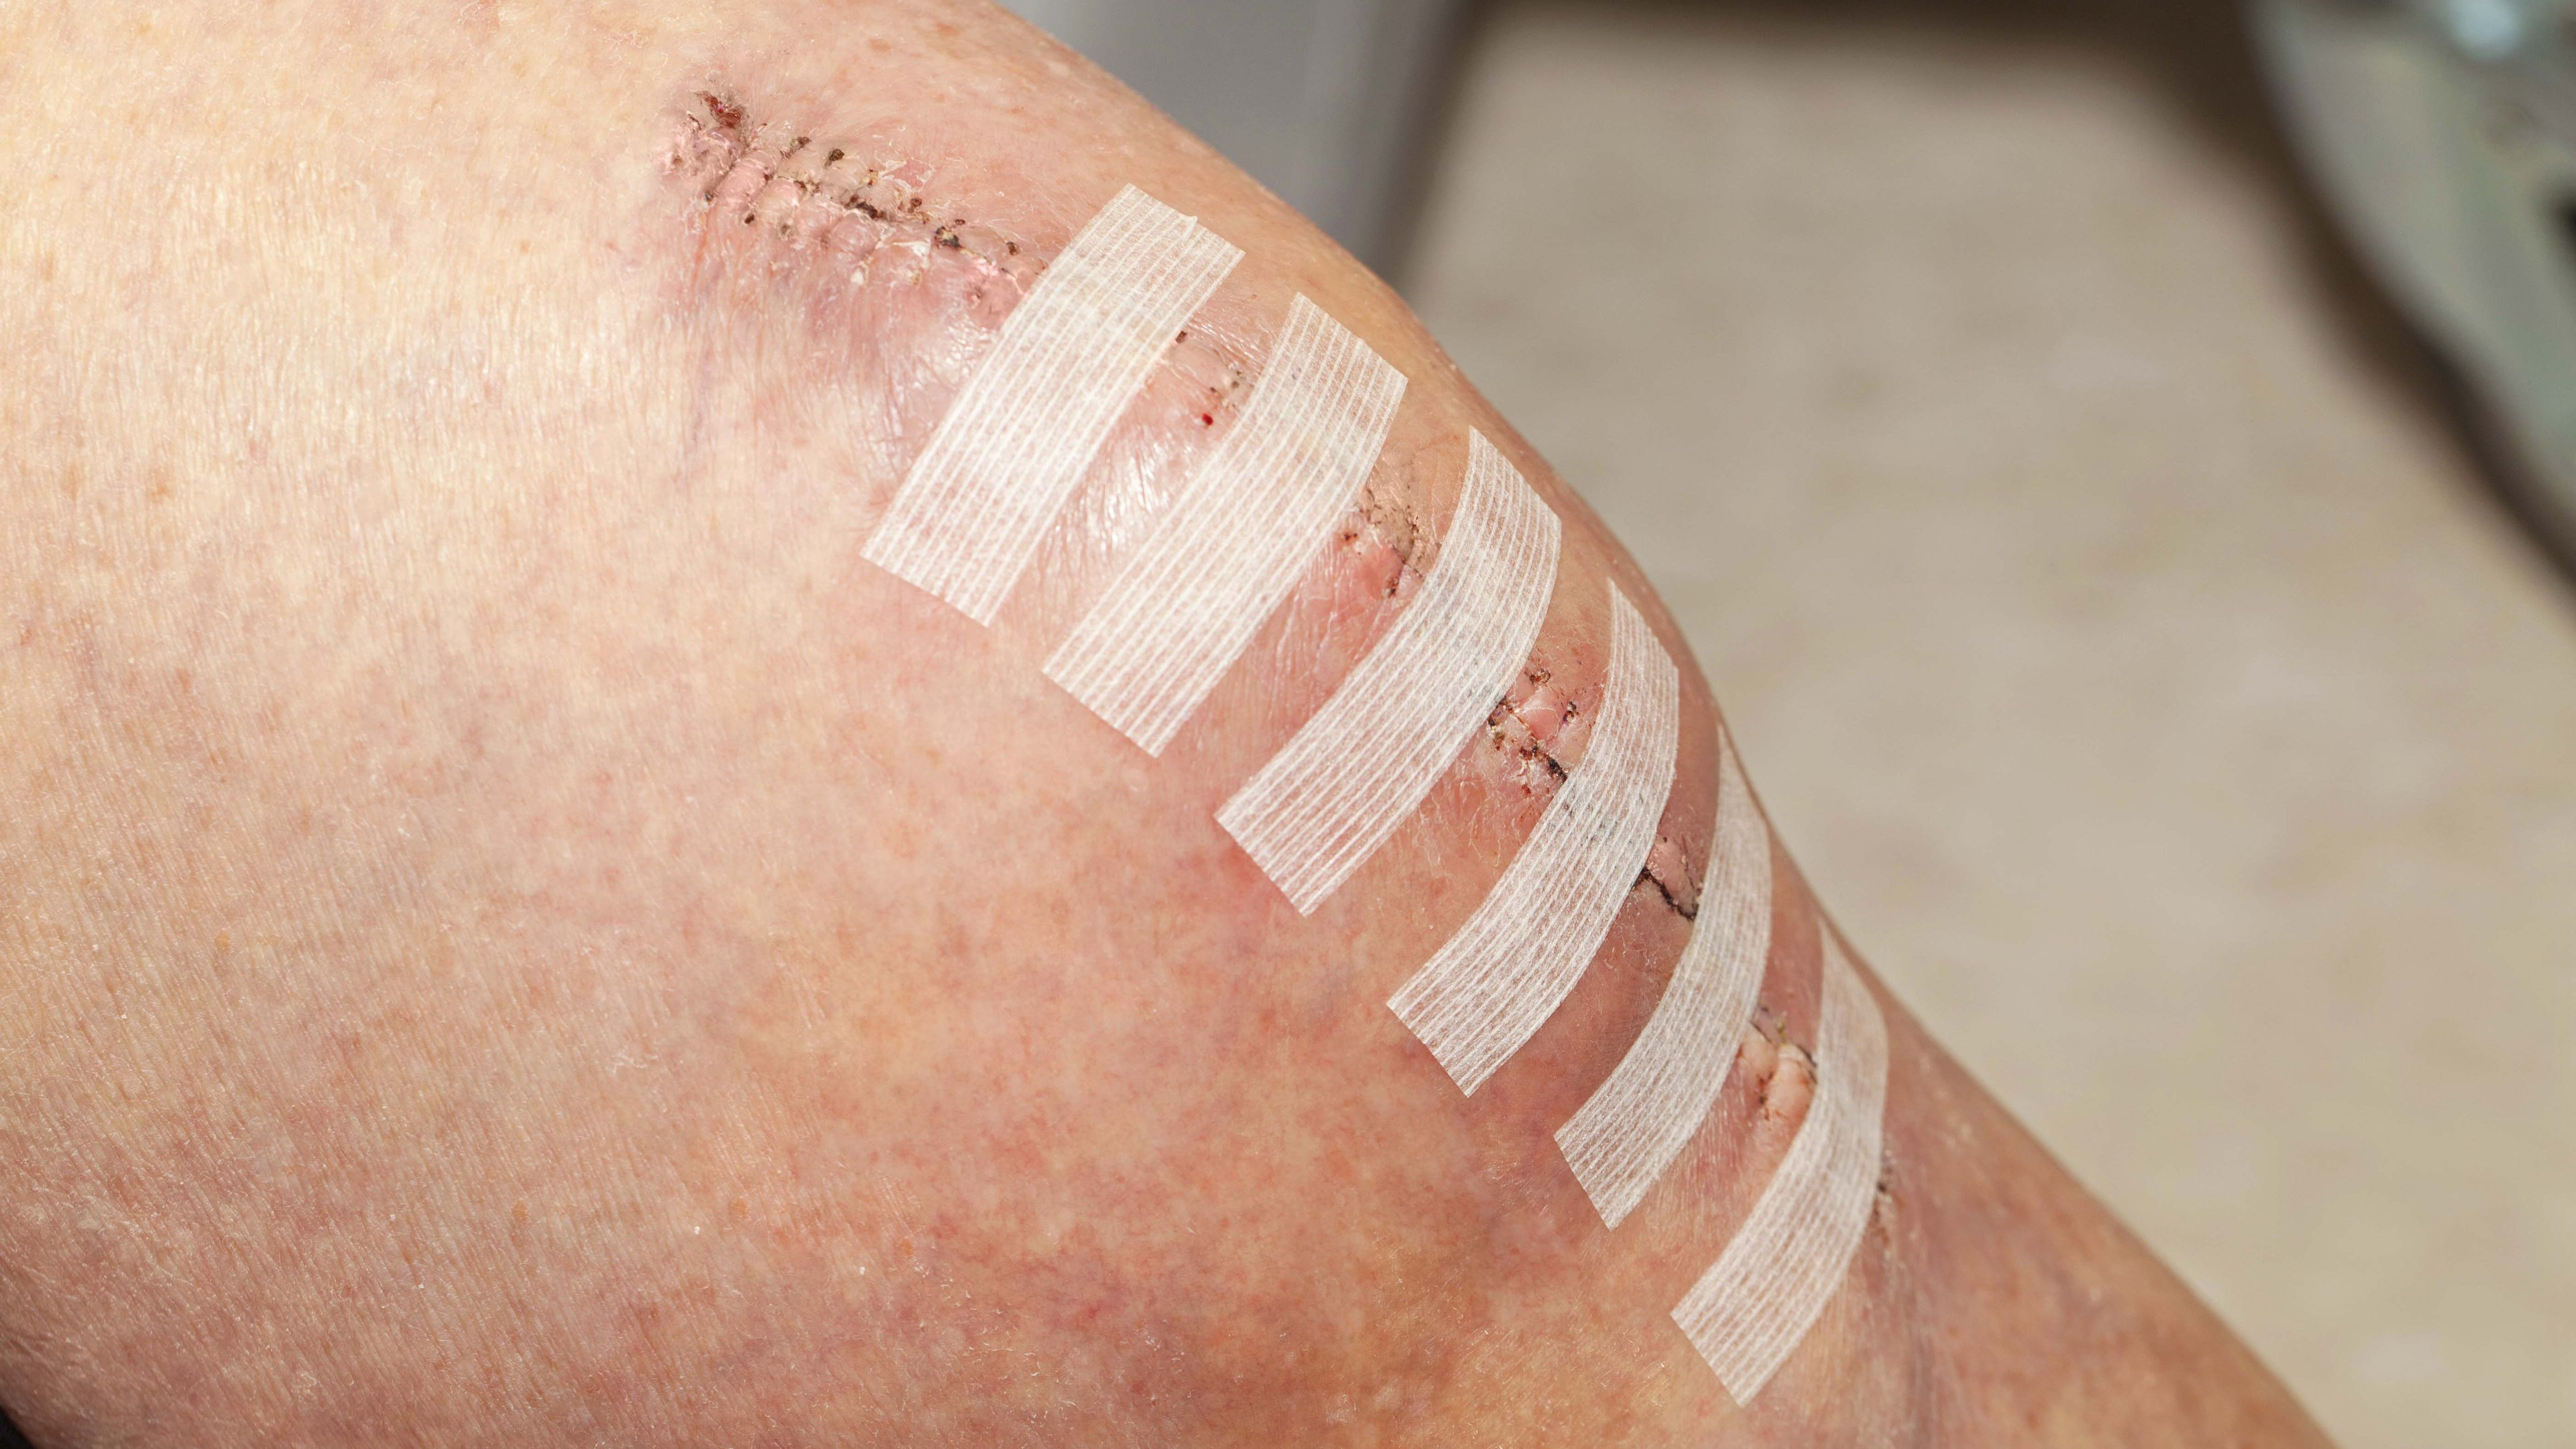 How to Care for a Surgical Wound - Incision Care Made Easy